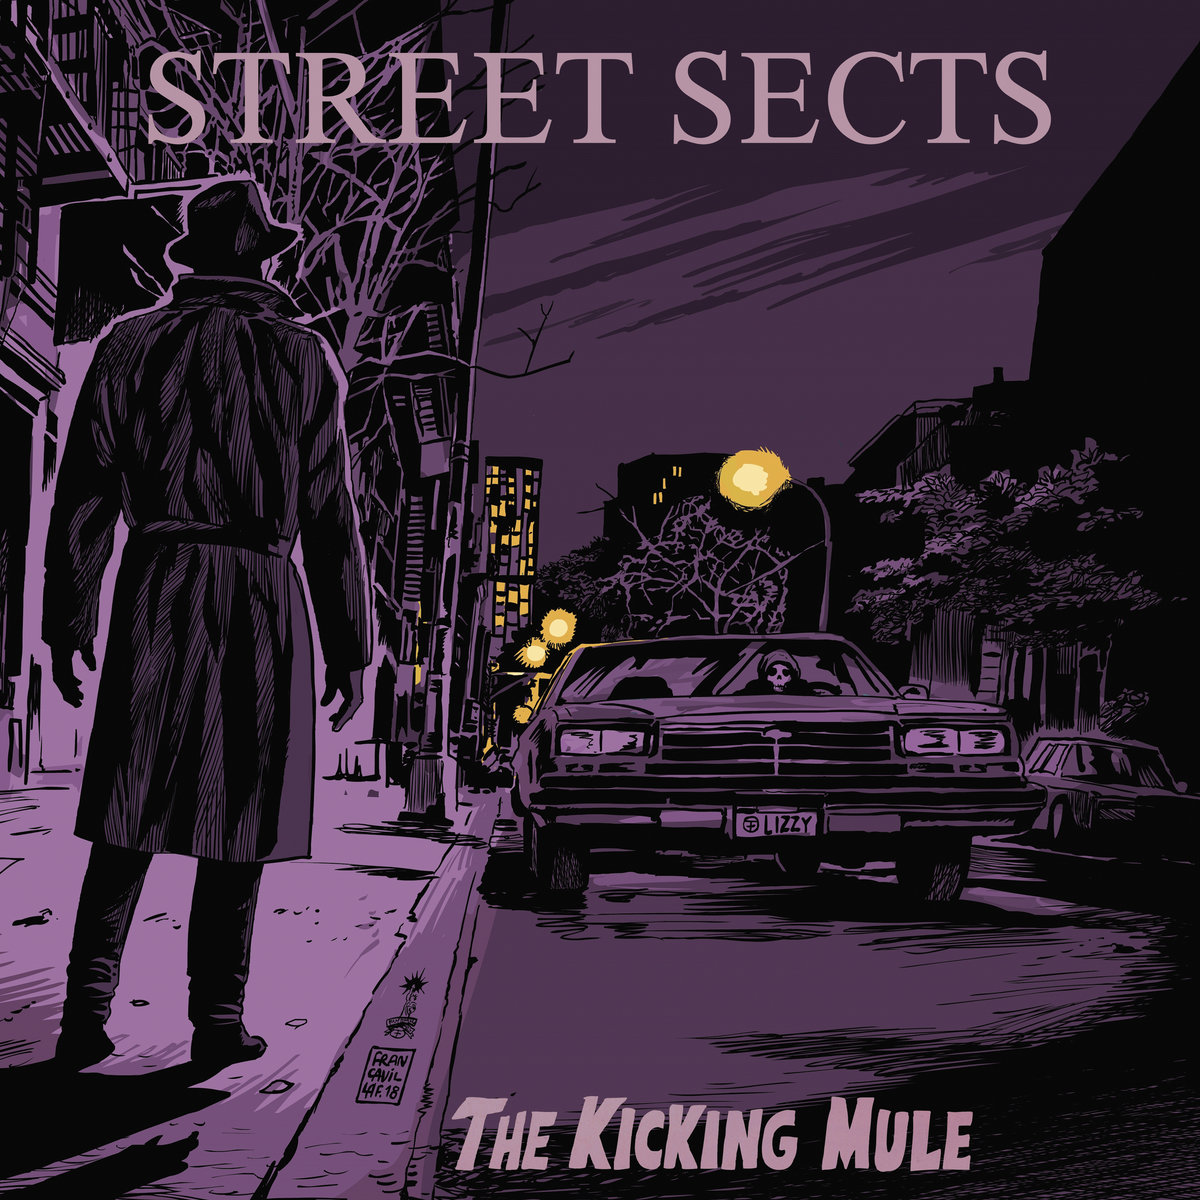 The Kicking Mule | Street Sects